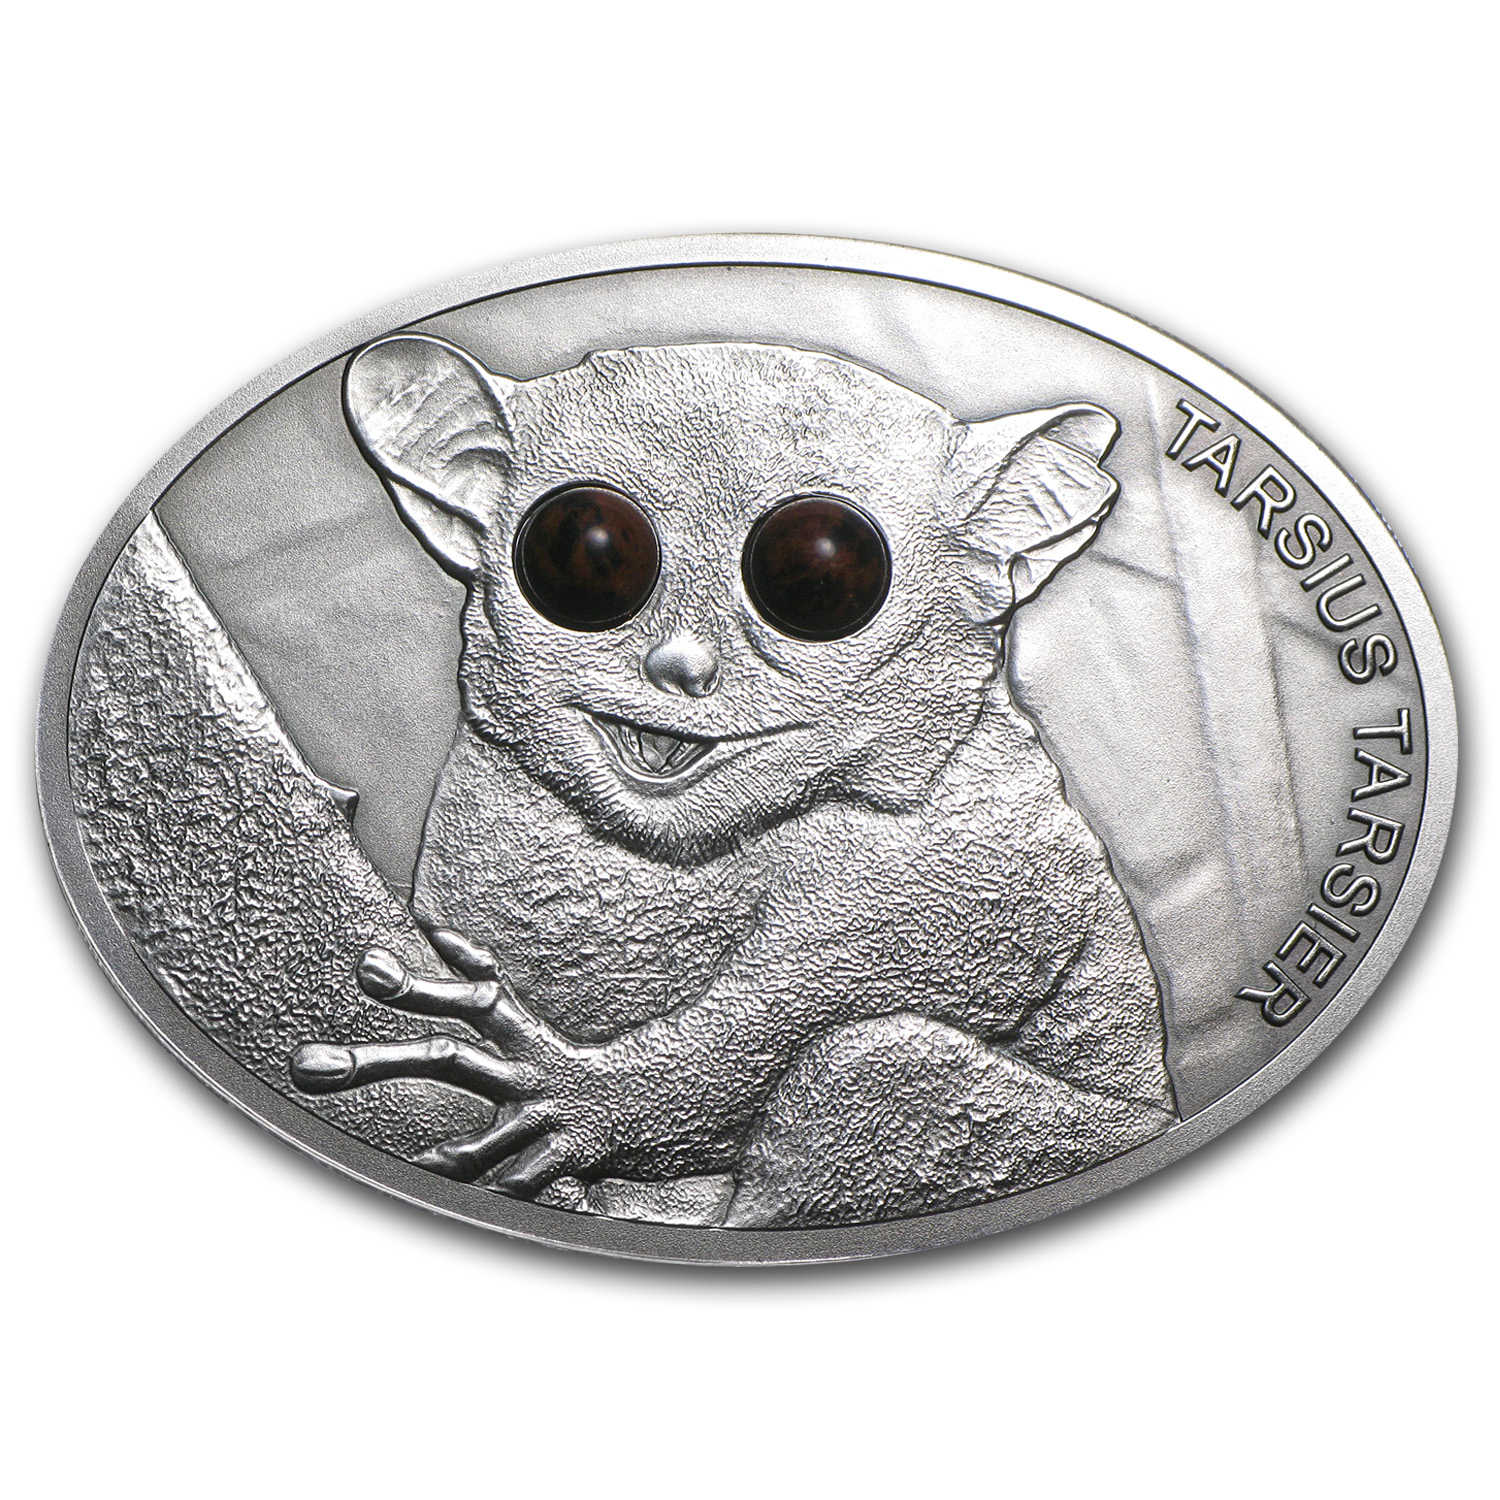 Fiji 2013 1 oz Silver Fascinating Wildlife - Maki Tarsius Tarsier